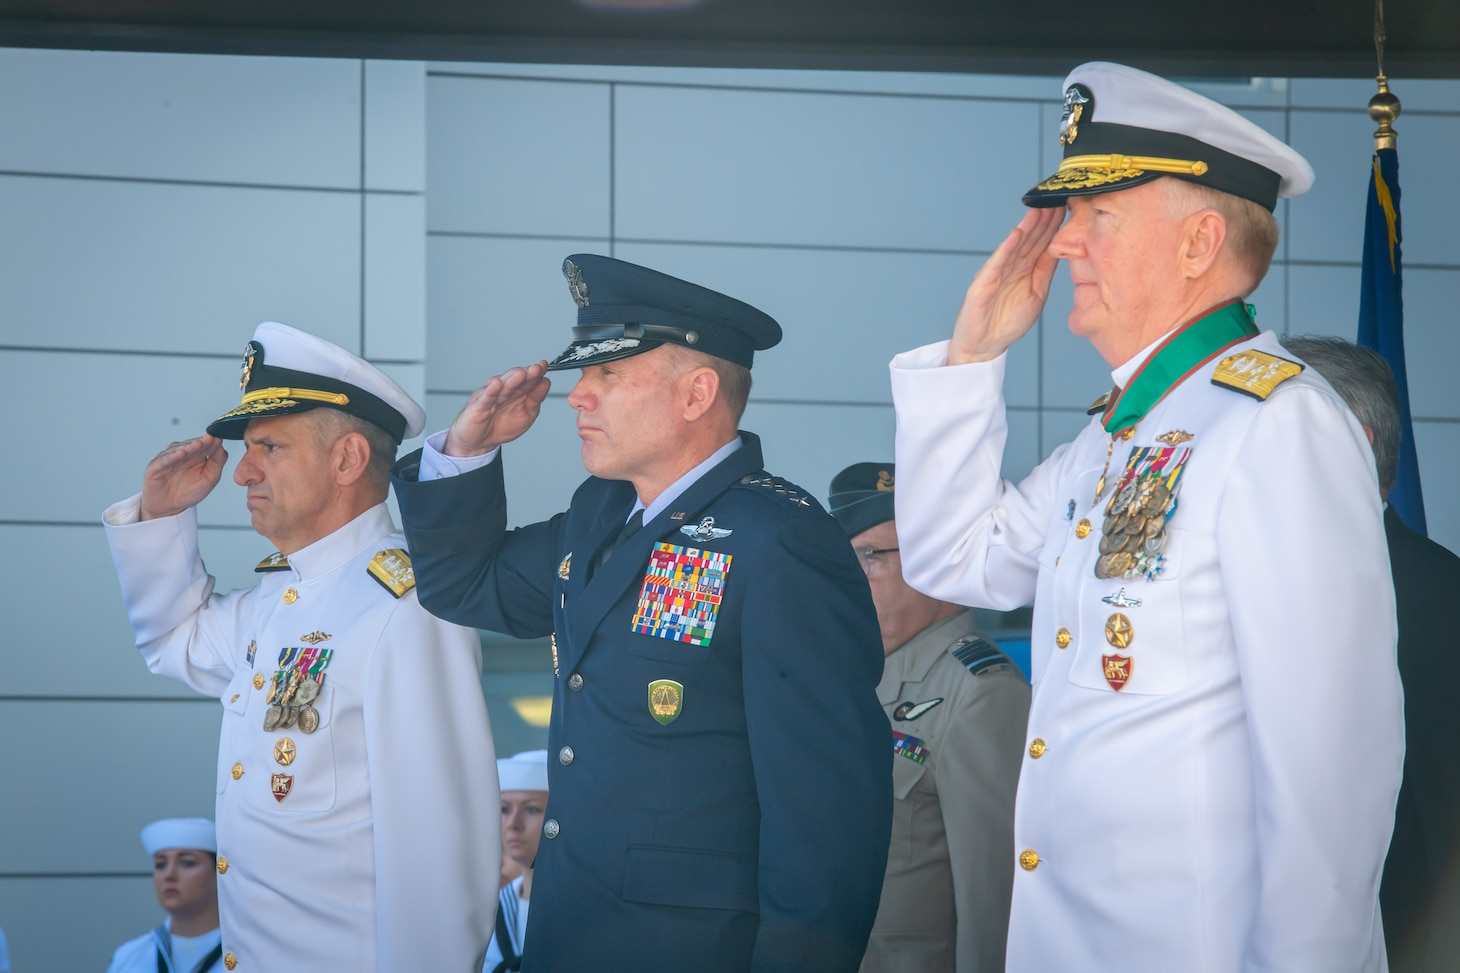 U.S. Naval Forces Europe-Africa Change of Command Ceremony